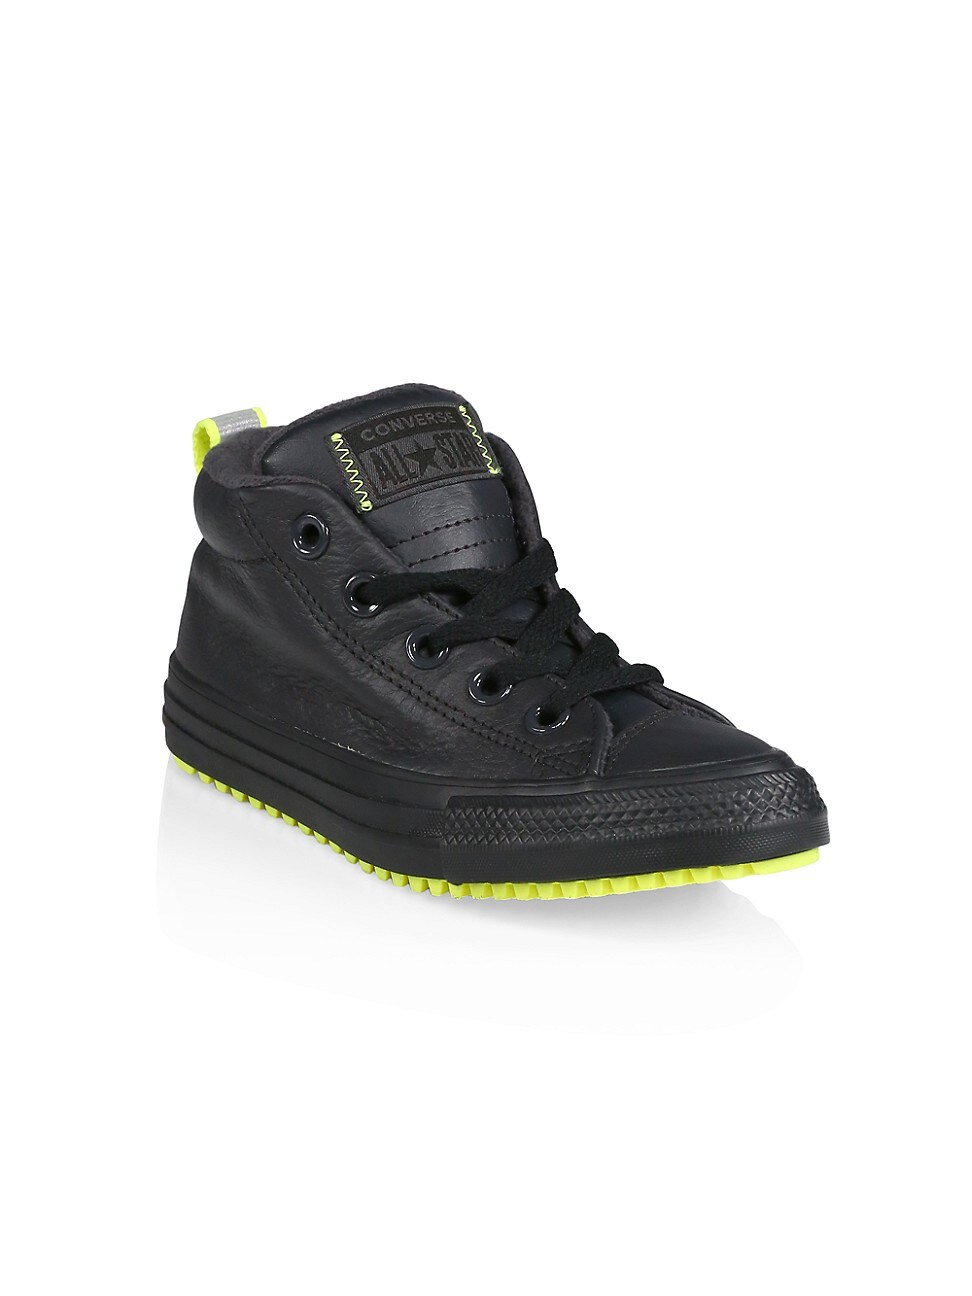 CONVERSE BOY'S CHUCK TAYLOR ALL STAR LEATHER MID-TOP SNEAKERS